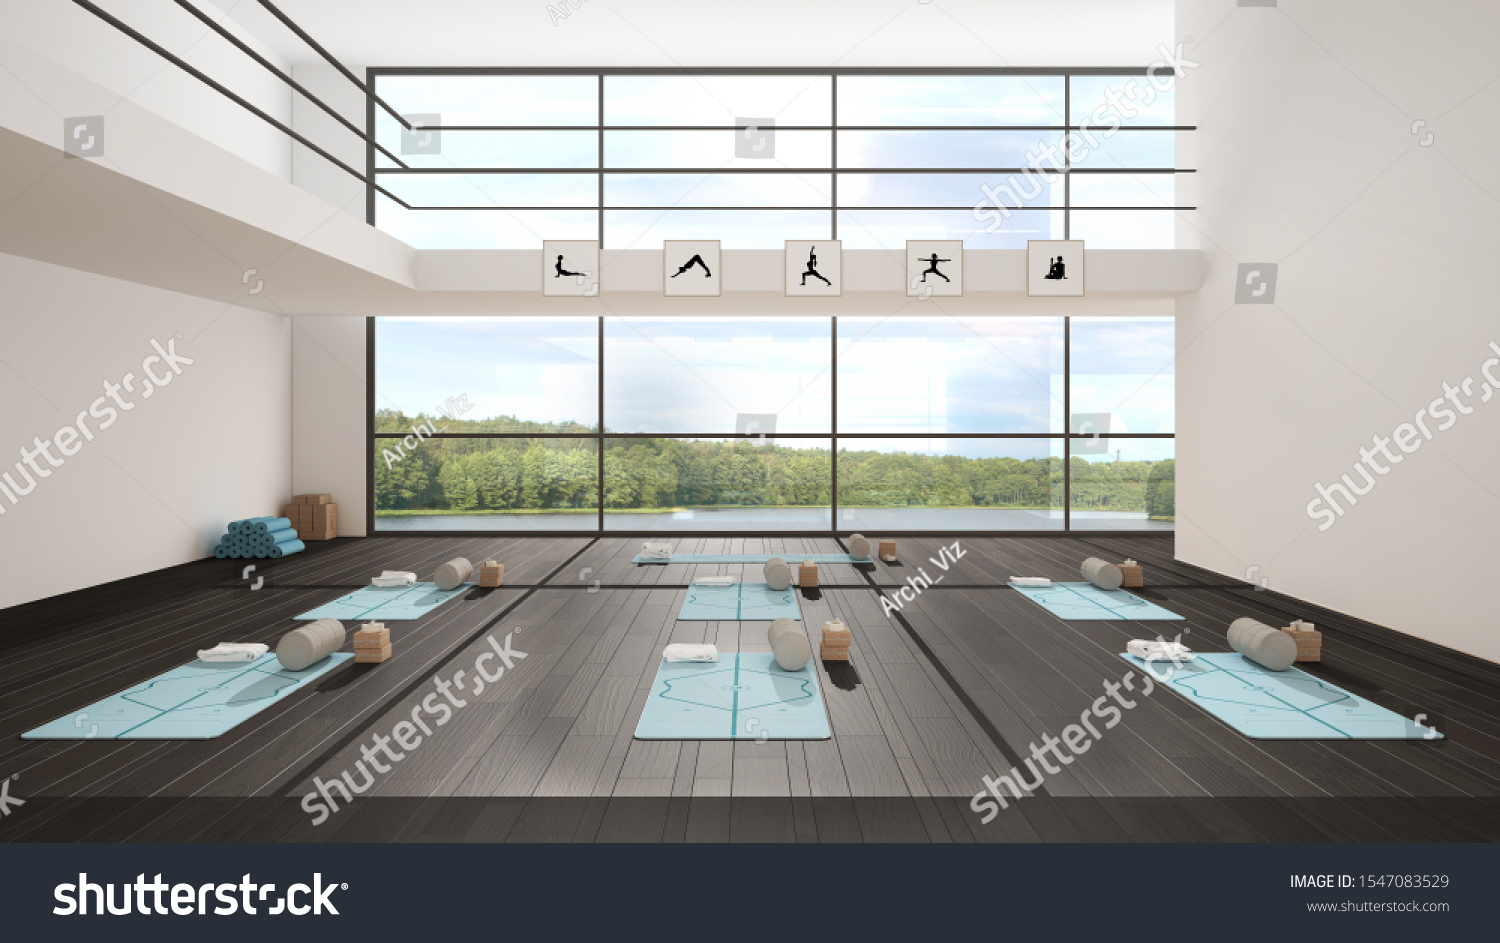 Empty Yoga Studio Interior Design Architecture Stock Illustration 1547083529